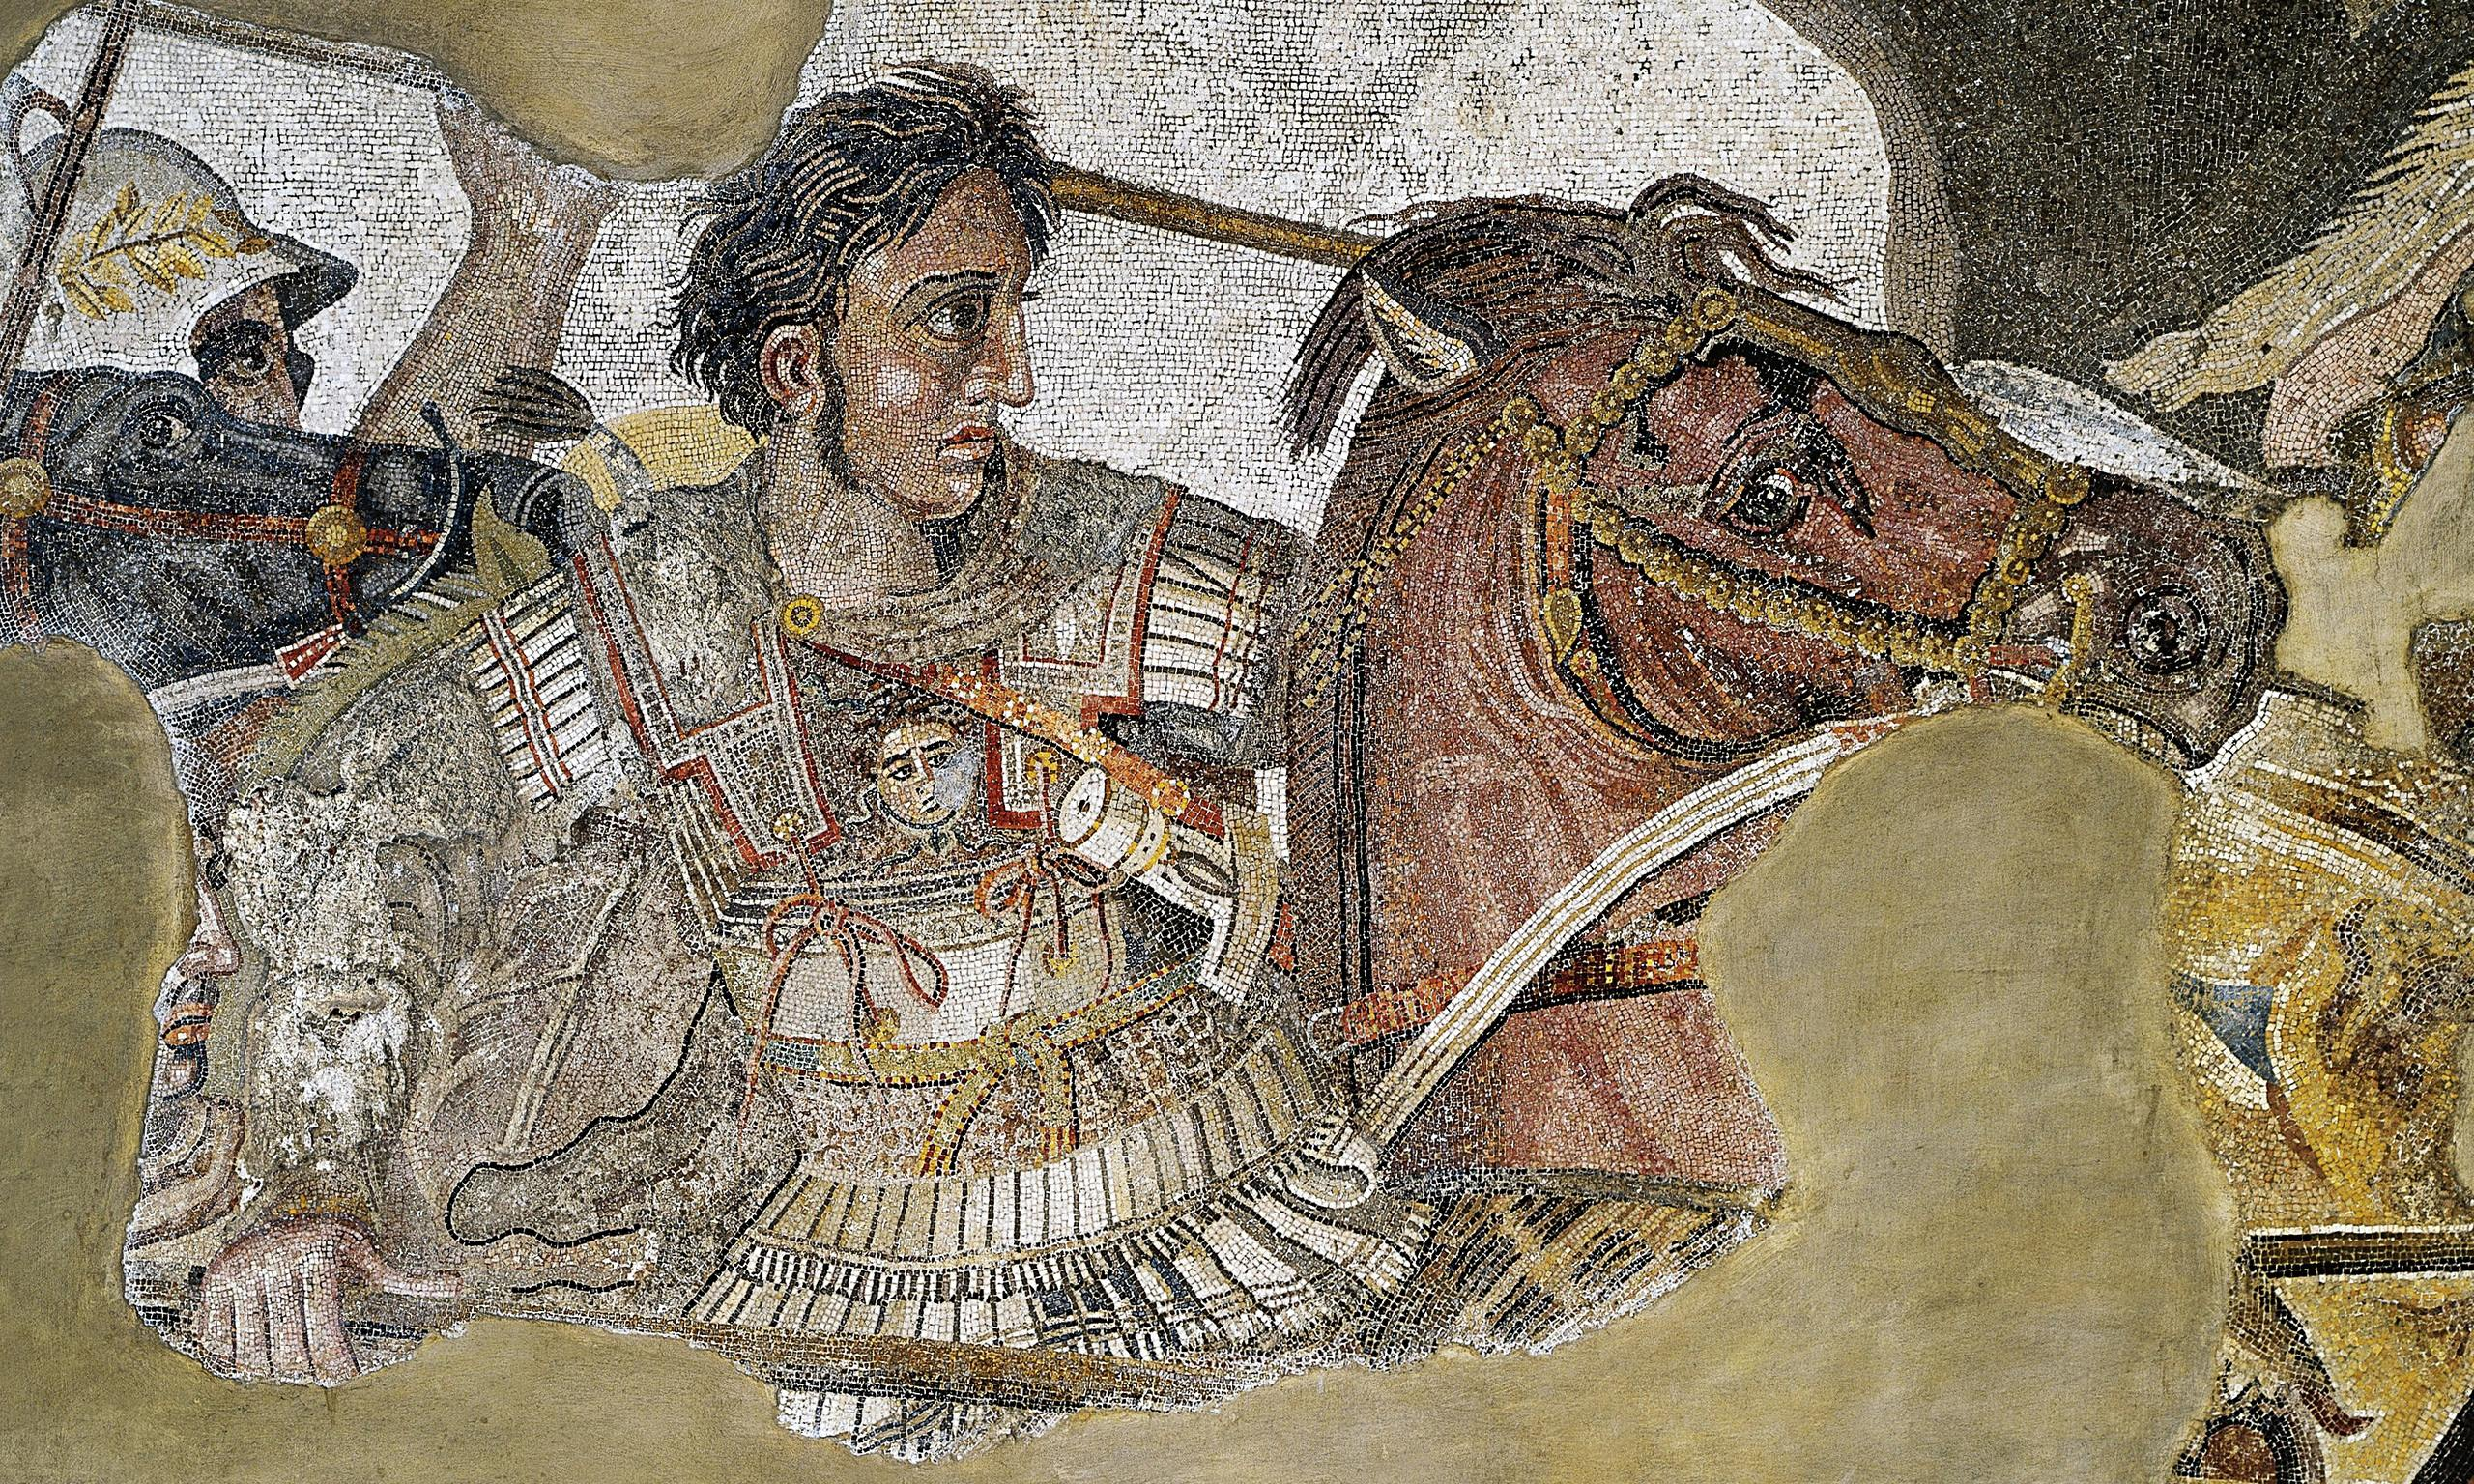 From Alexander the Great to Attila the Hun Tomb – 5 Lost Burial Sites that are worth Finding